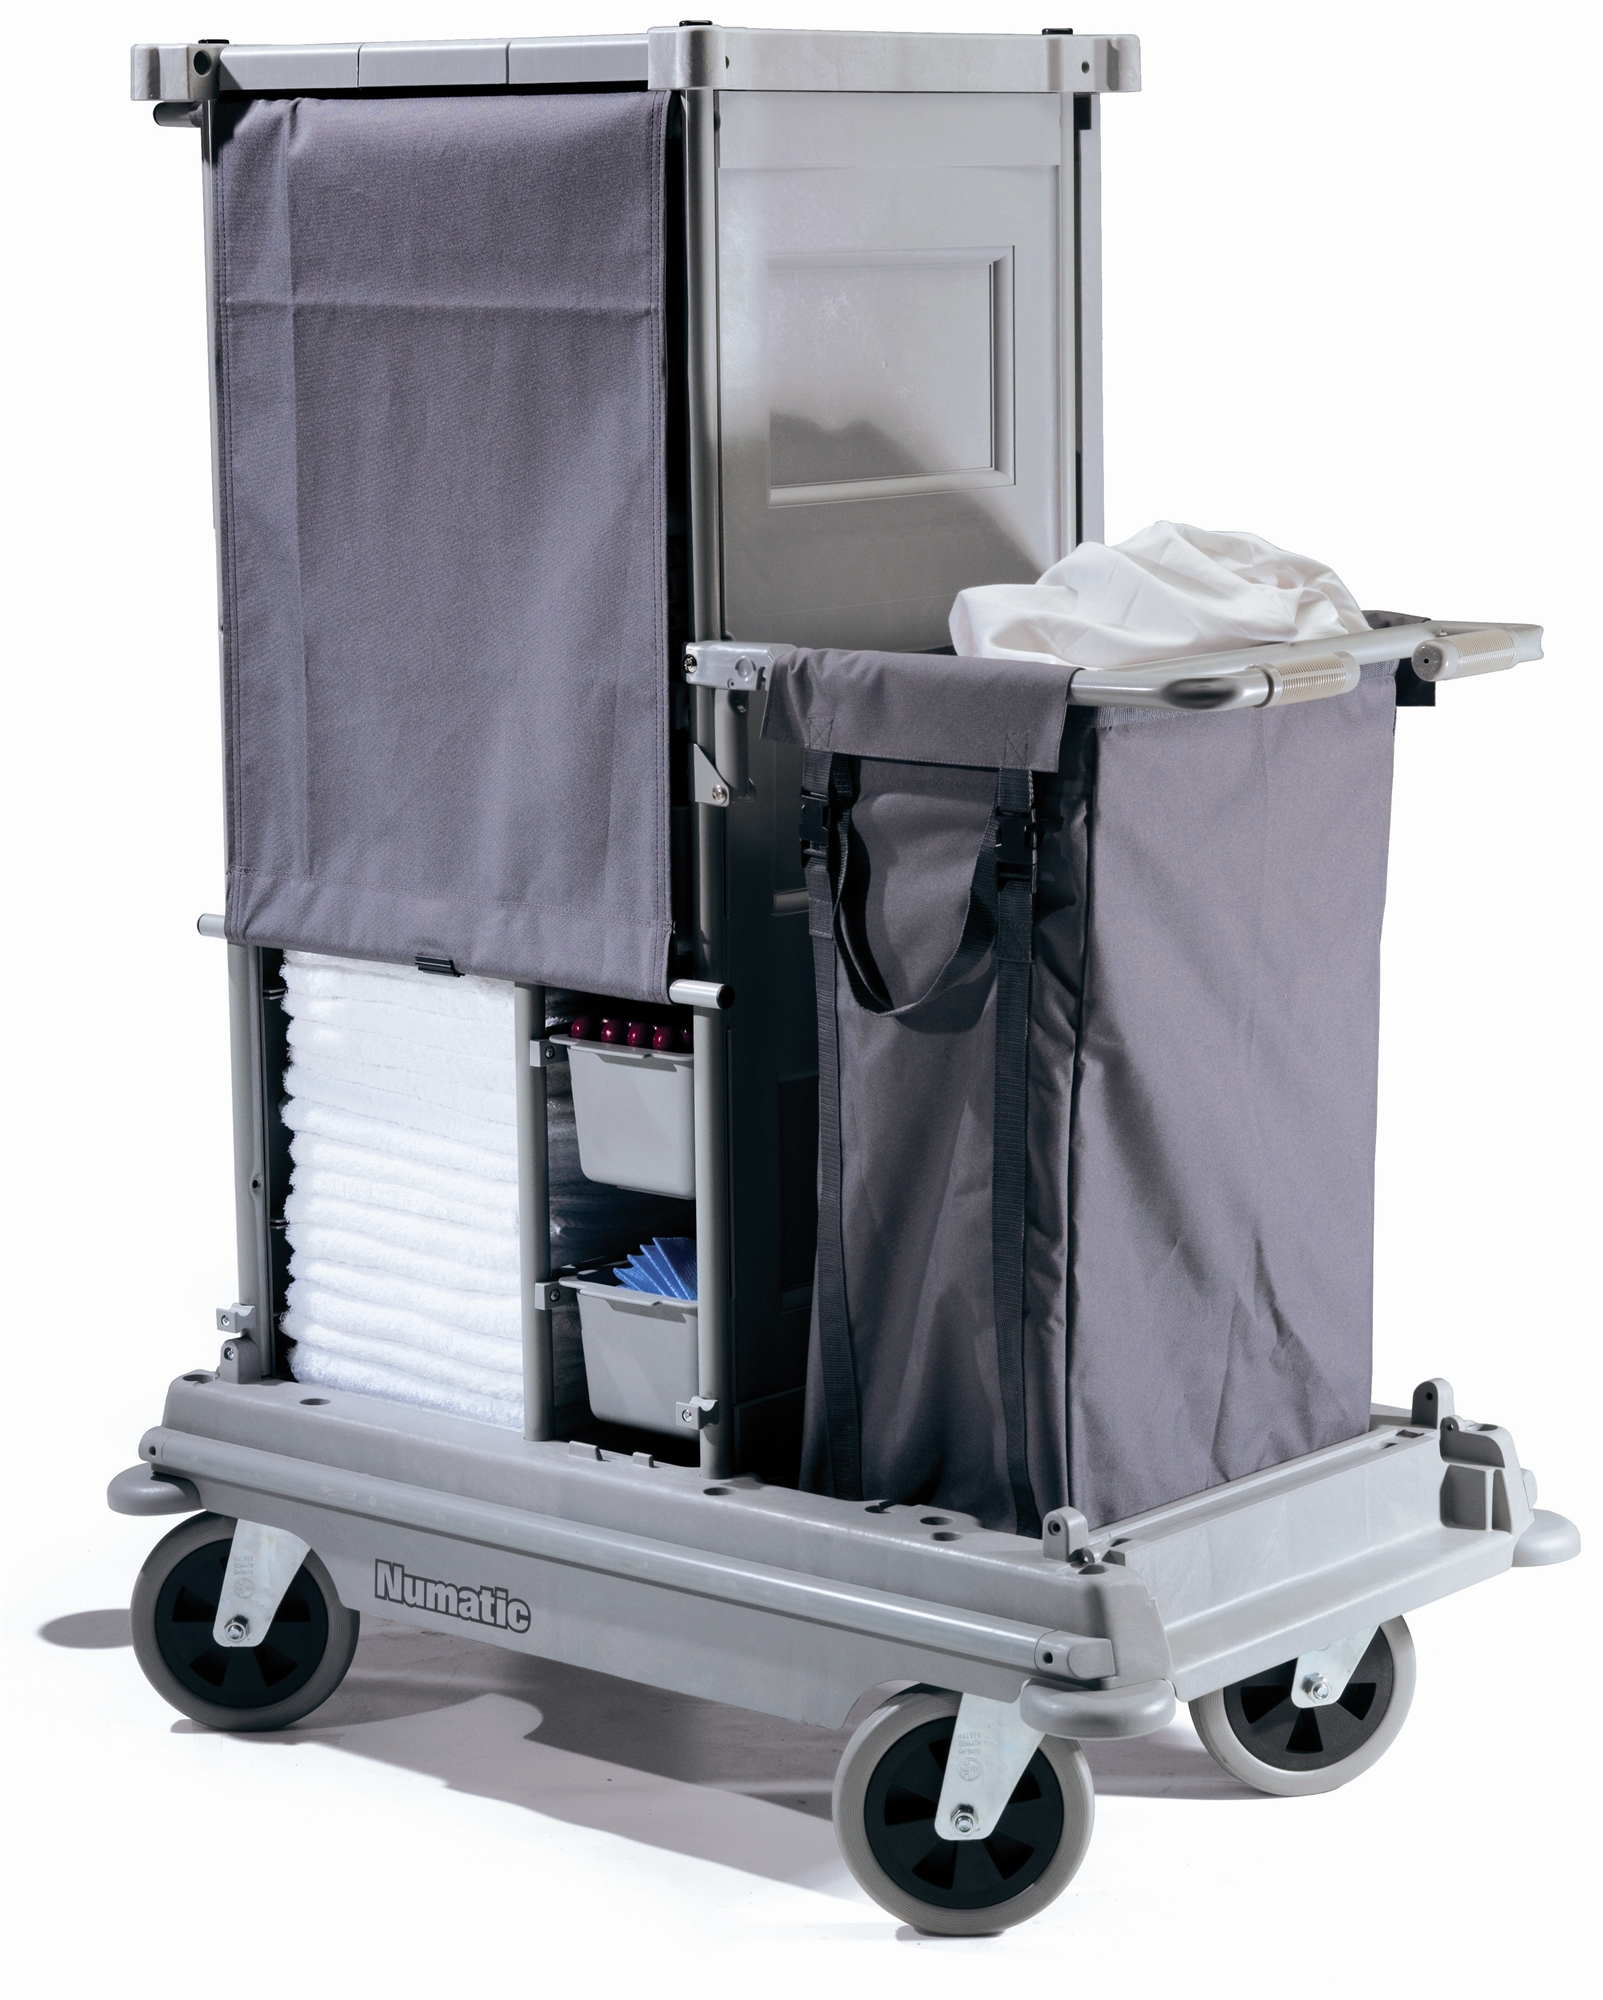 Chariot hotelier numatic nks 11 ff for Materiel hotelier professionnel